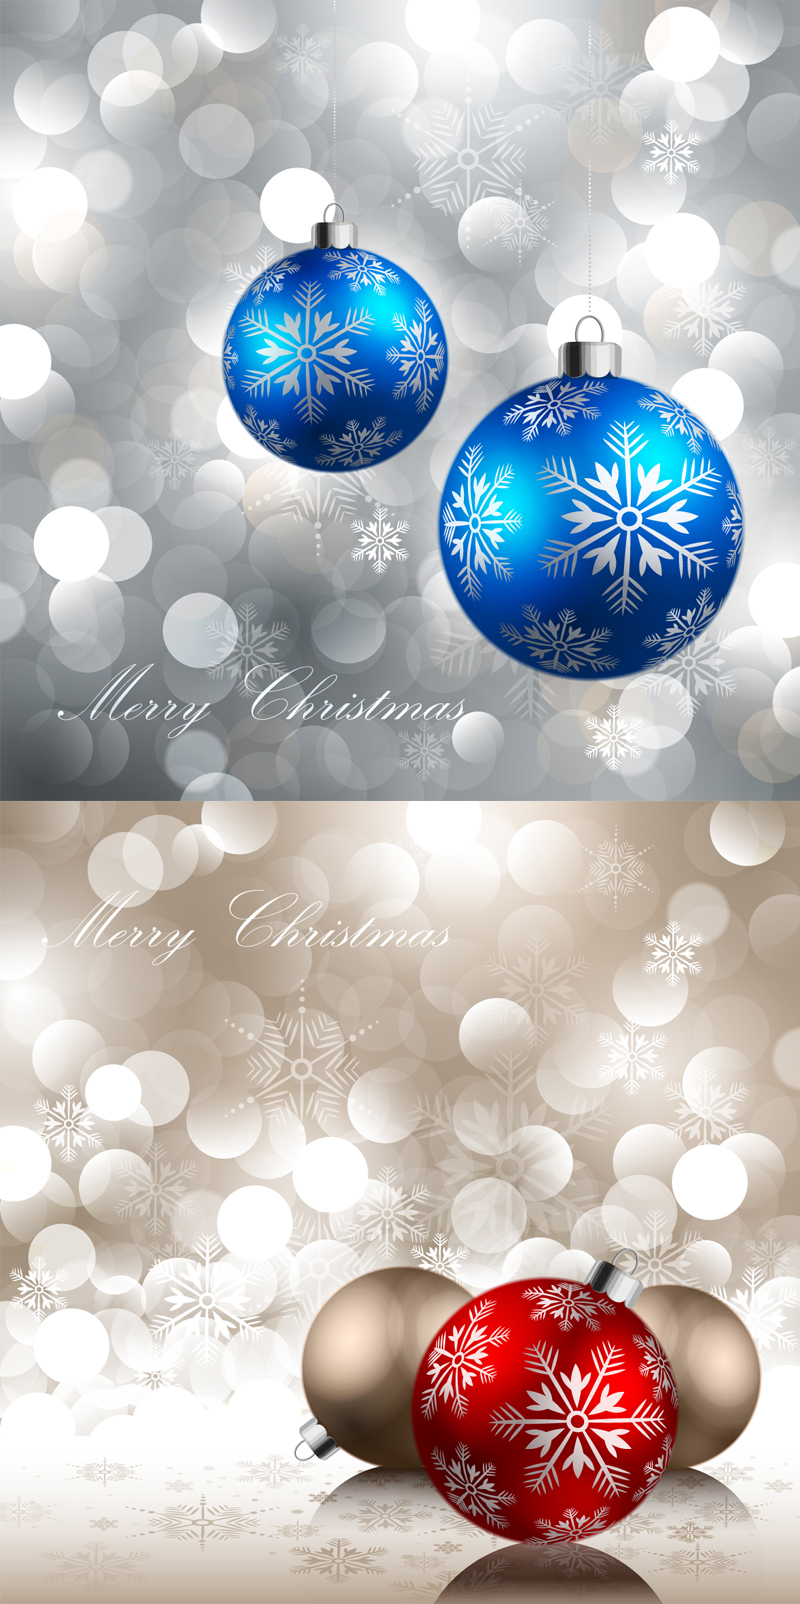 2 free christmas card  ai file